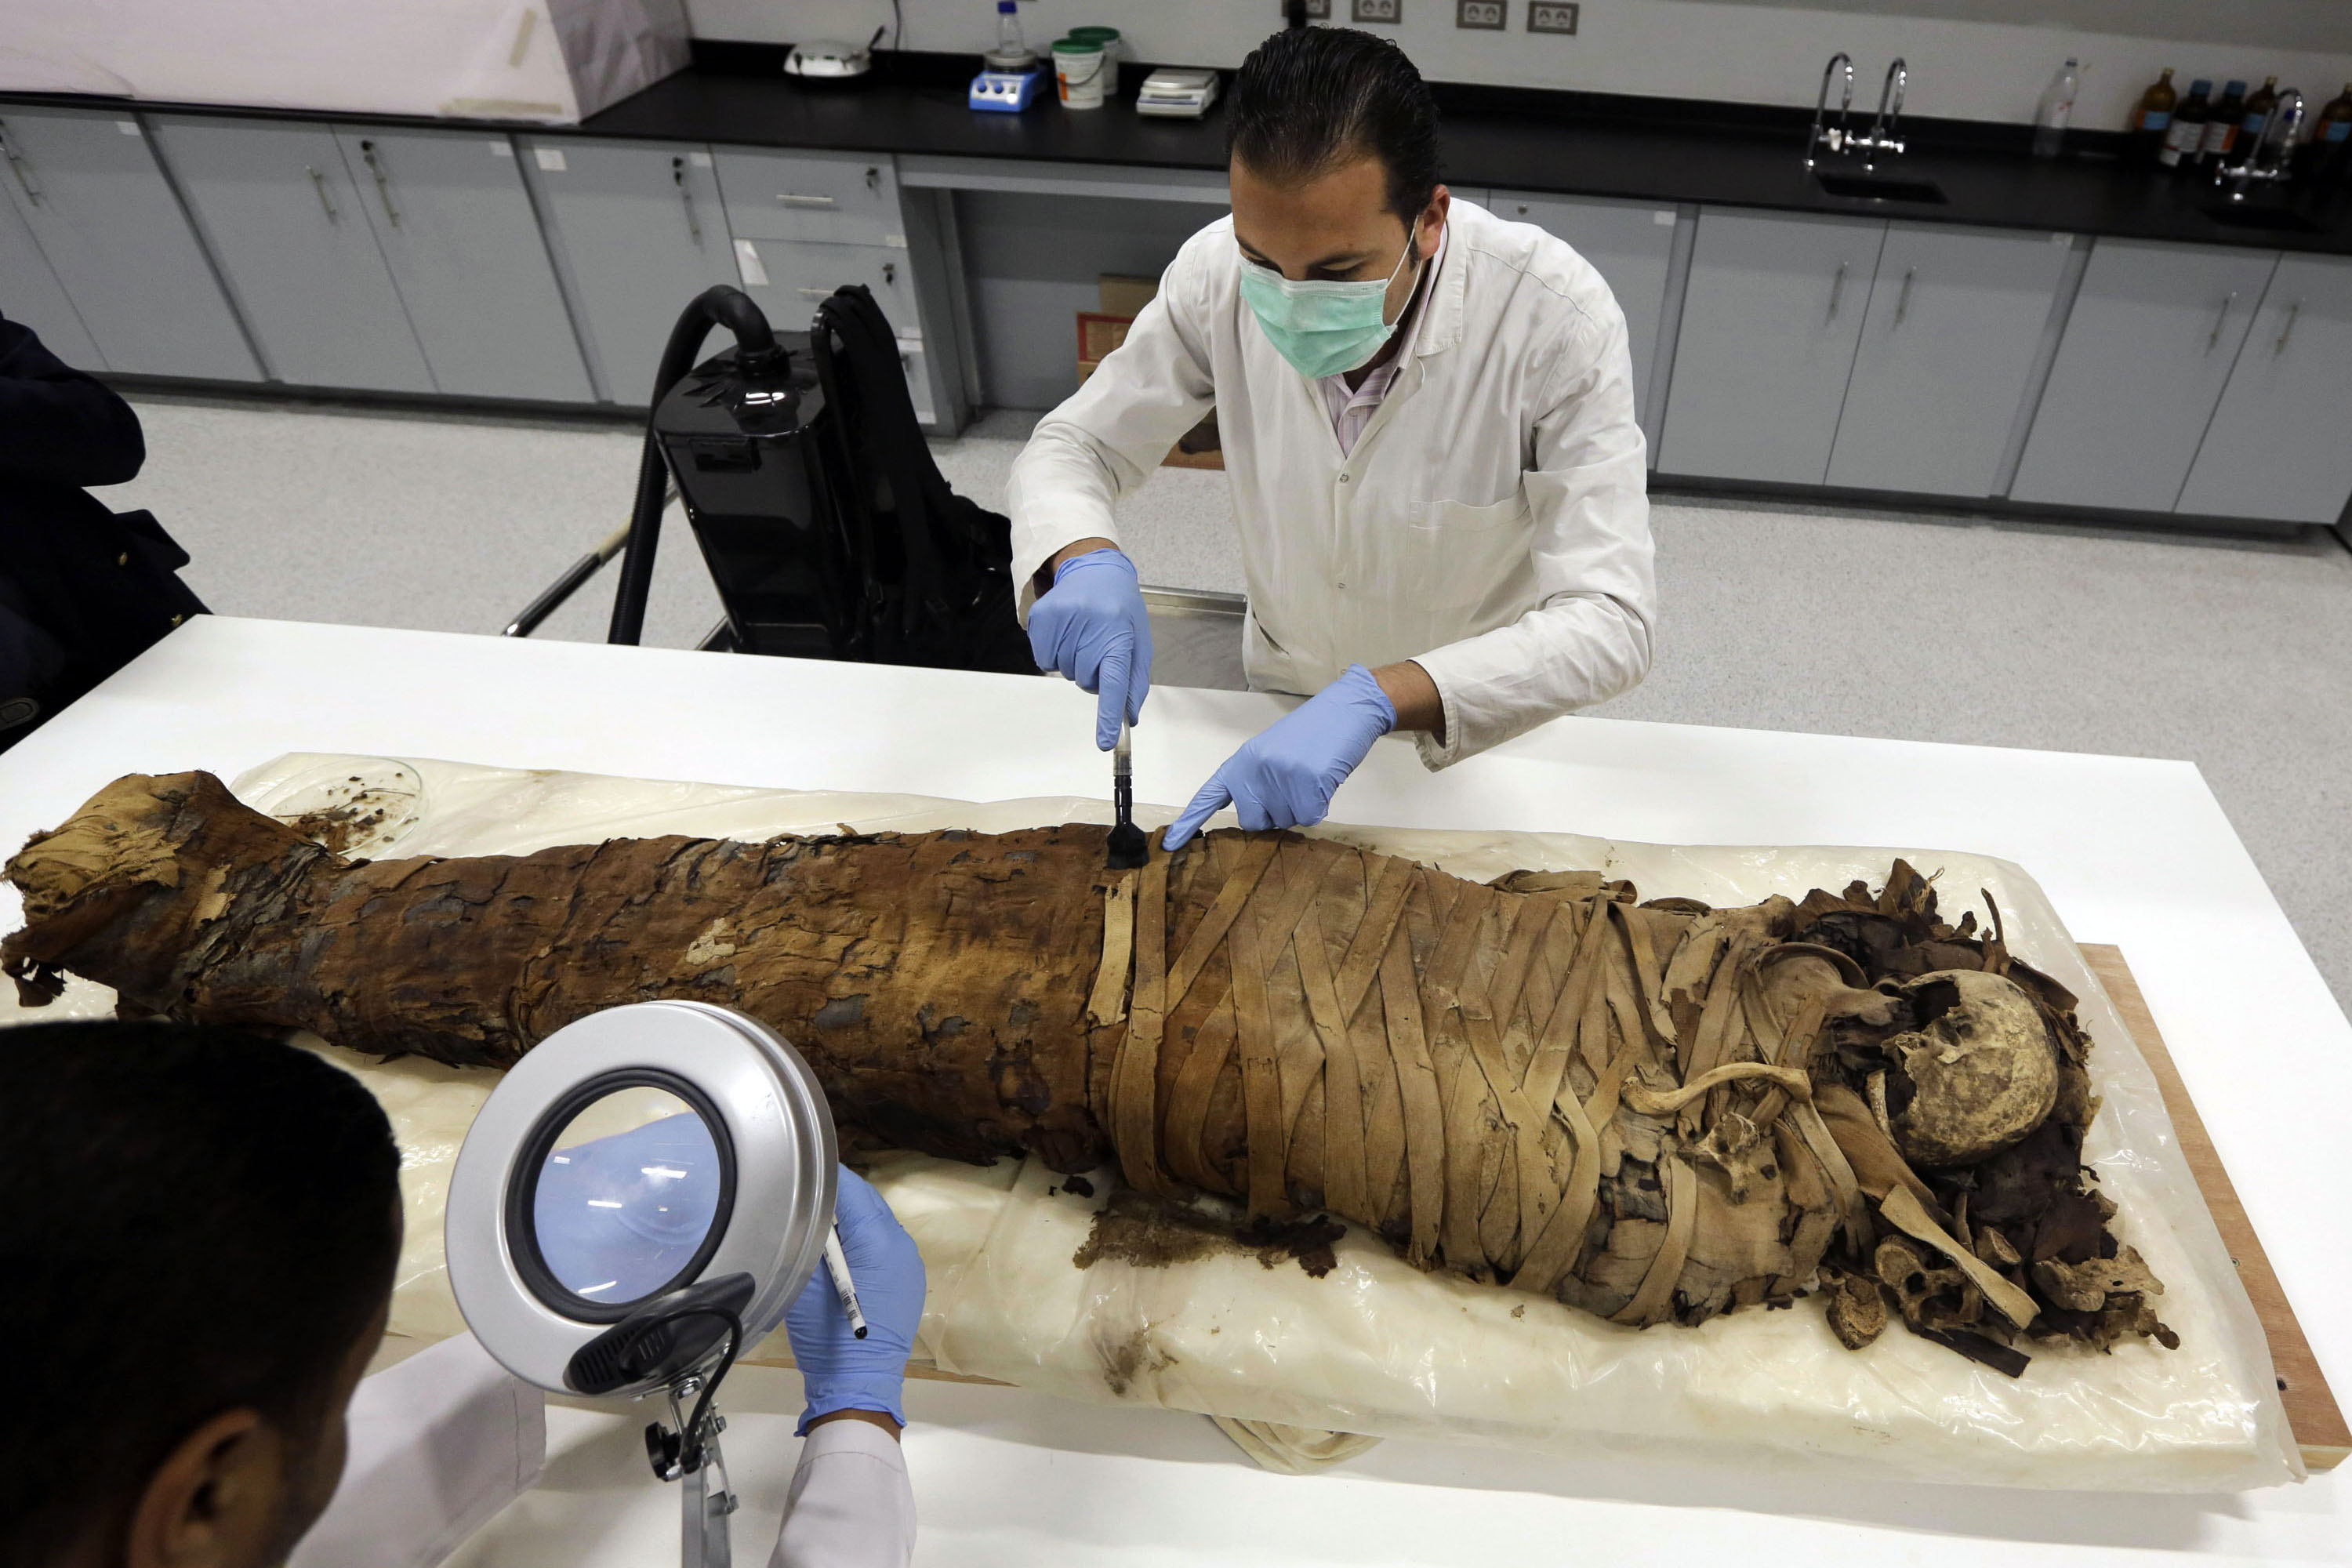 Egyptian conservators clean a female mummy dated to Pharaonic late period, (712-323 BC), in the conservation center of Egypt's Grand museum under construction, just outside Cairo, Egypt, Monday, March 17, 2014. Egyptís antiquities minister says construction has begun on the main hall of a massive new museum by the Pyramids, the final phase of a complex thatís intended to house 100,000 ancient artifacts including King Tutankhamun's mummy. (AP Photo/Amr Nabil)